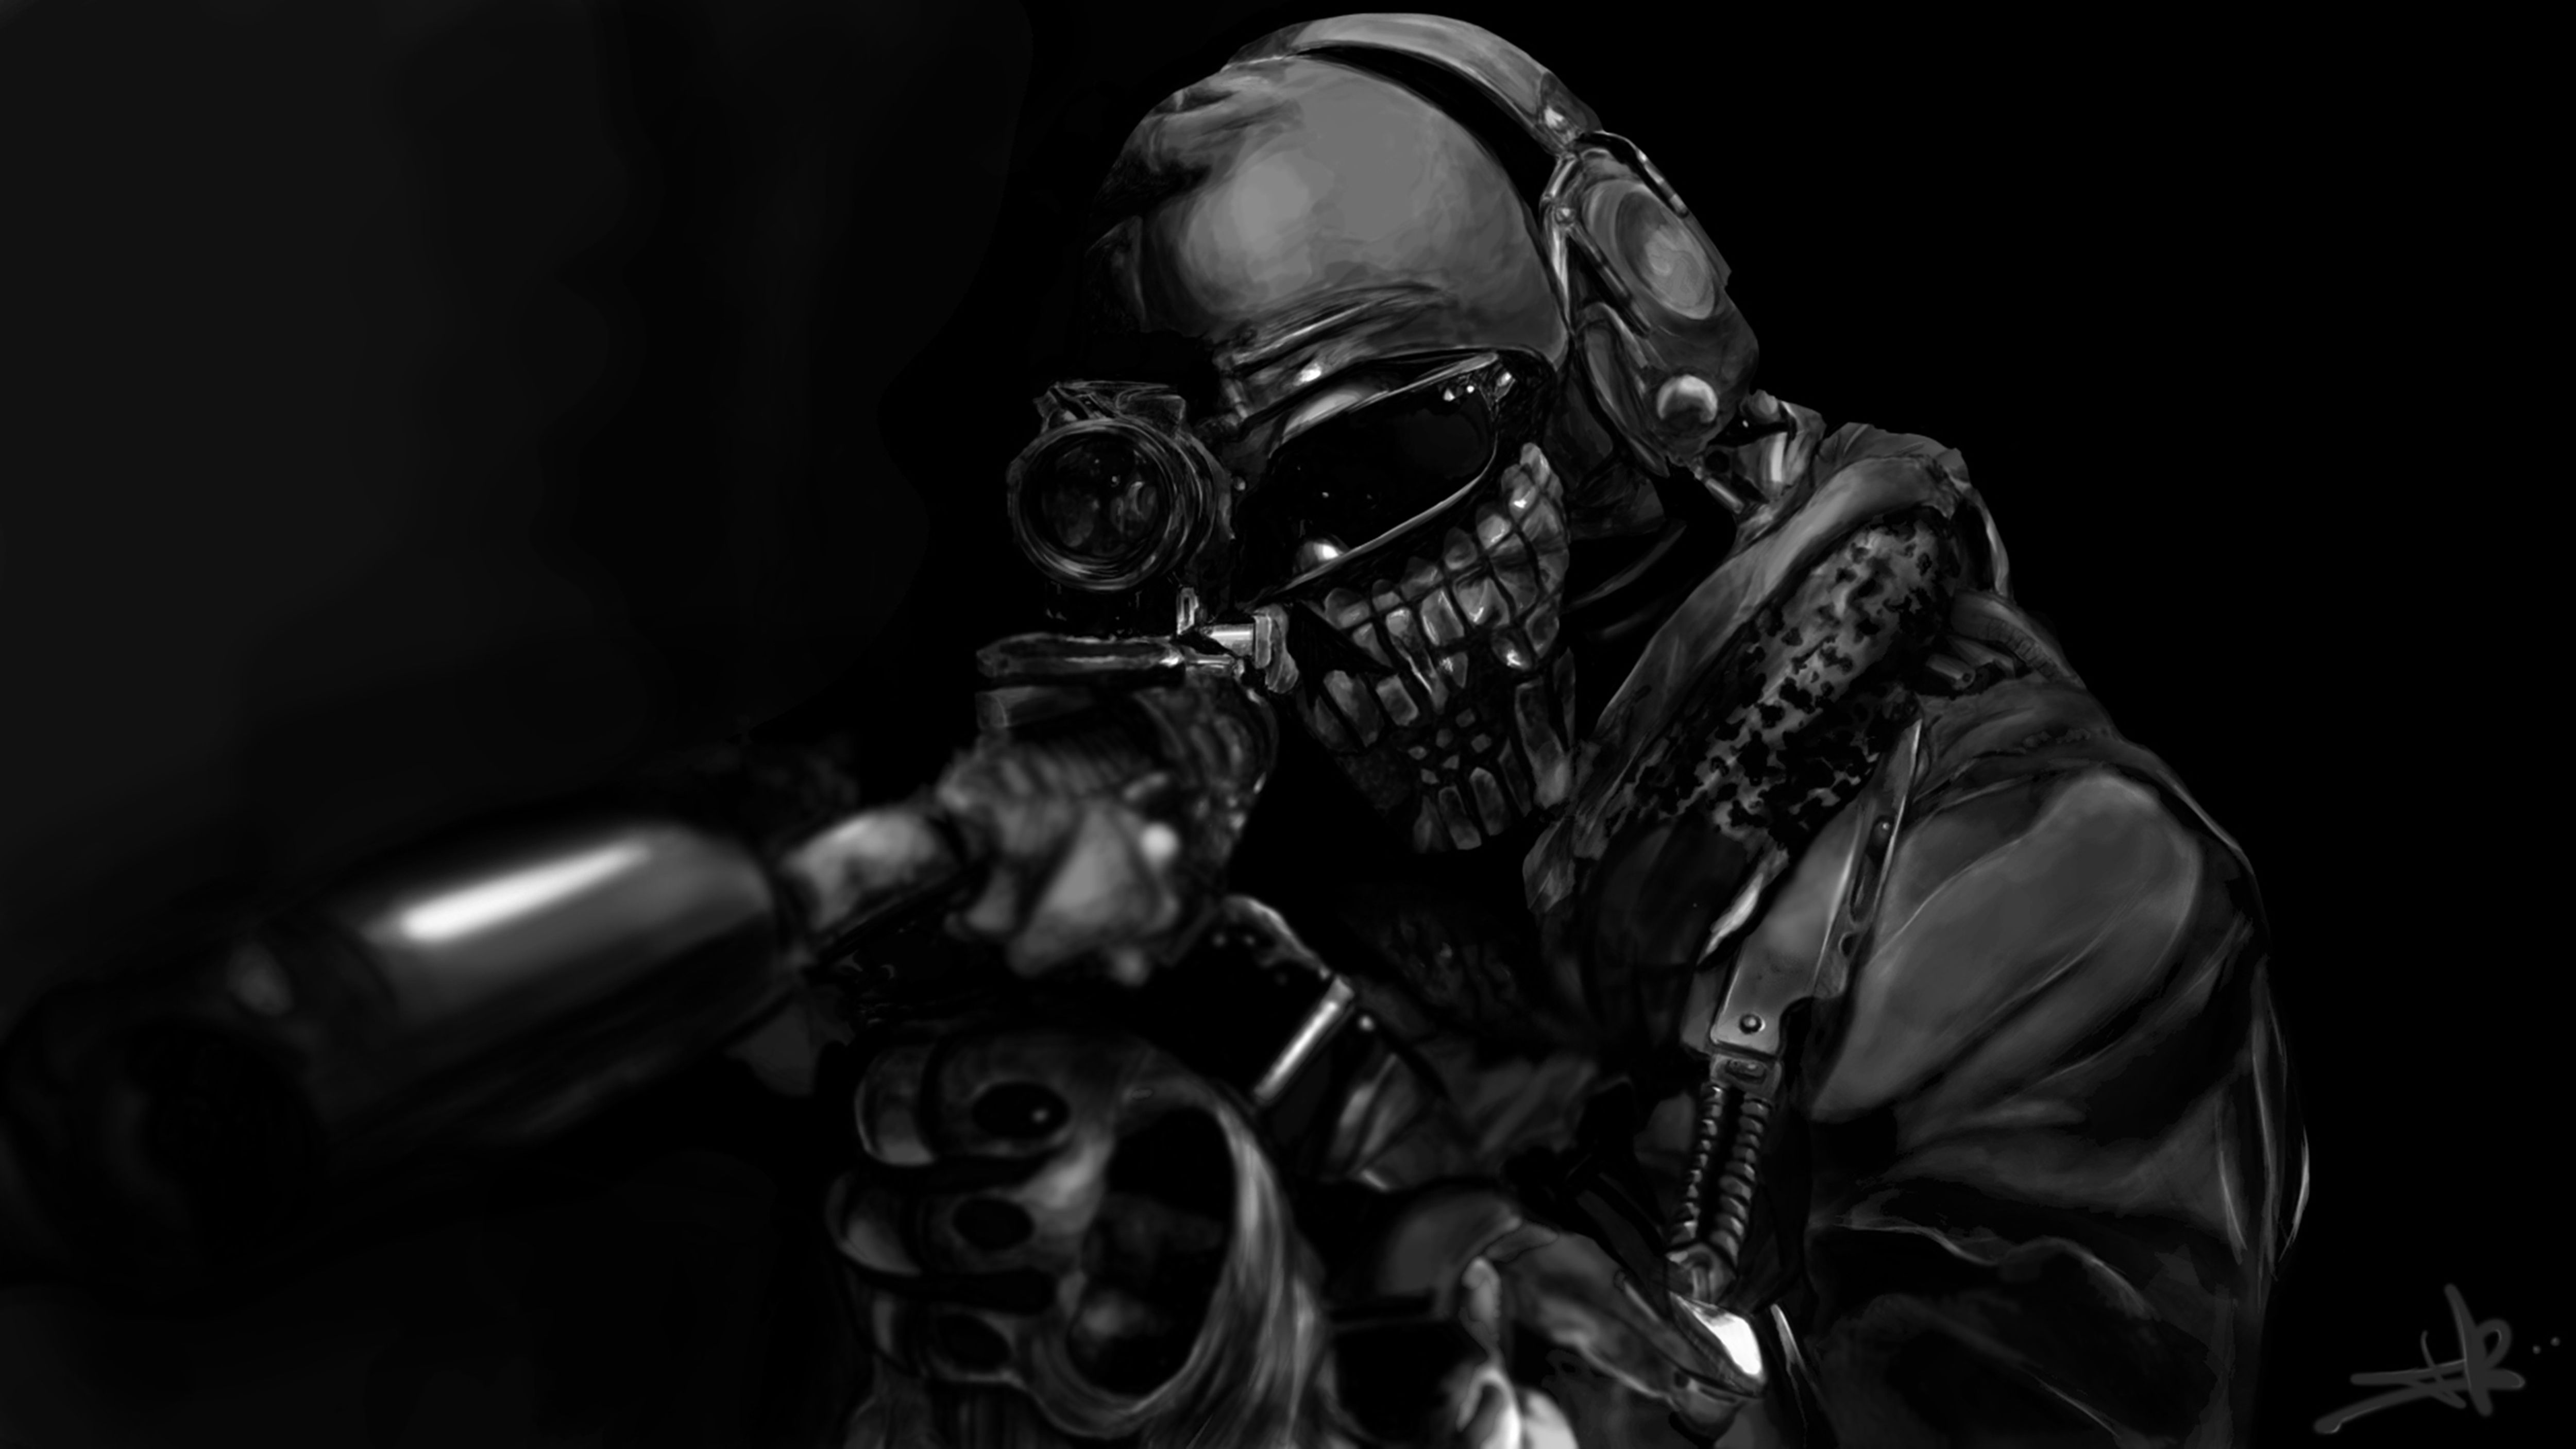 Action On Gun Violence >> Call of Duty warrior soldier weapon gun rs wallpaper | 5000x2813 | 151903 | WallpaperUP ...